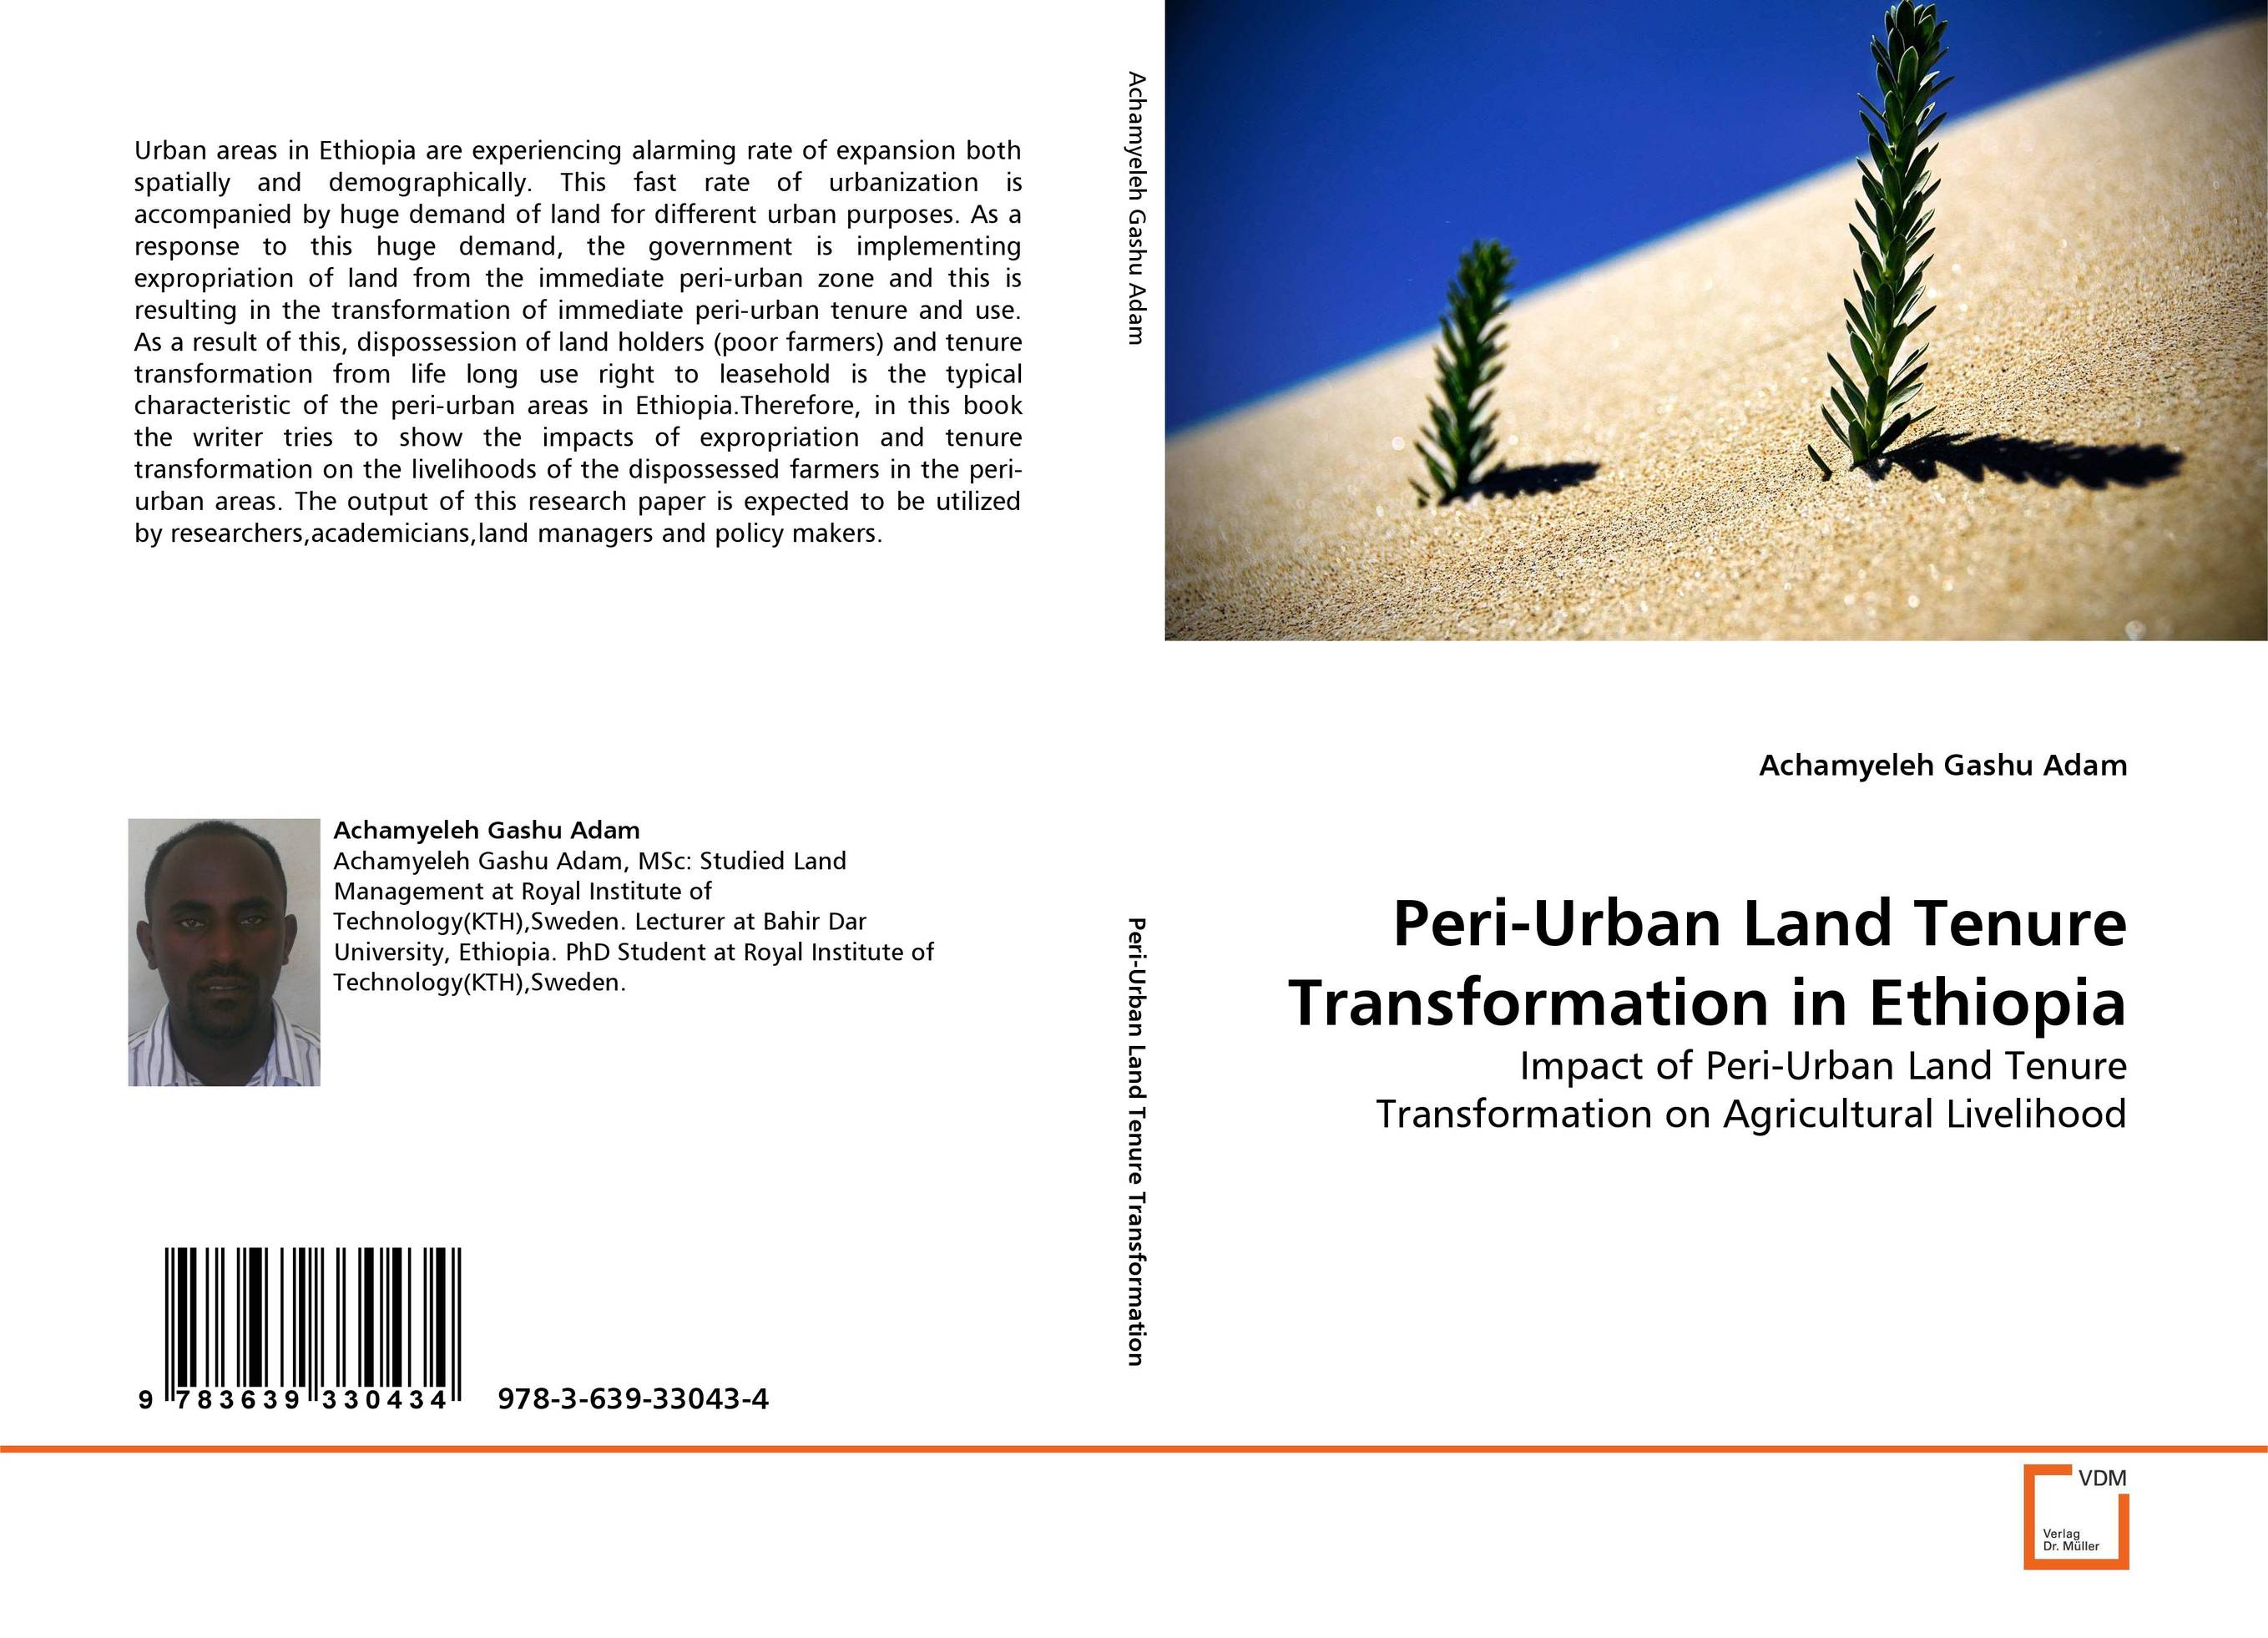 Peri-Urban Land Tenure Transformation in Ethiopia developmental state and economic transformation the case of ethiopia